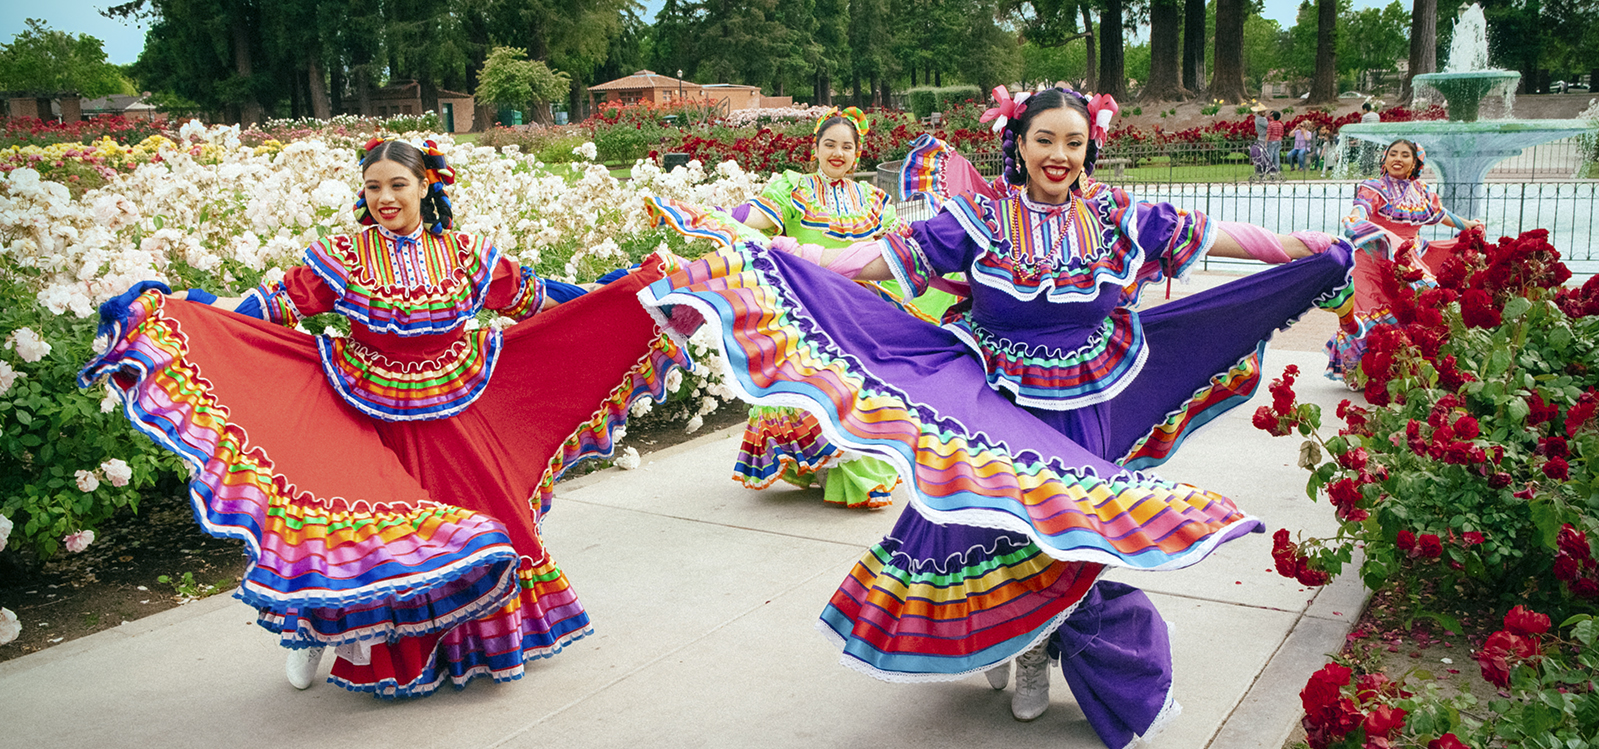 Dancers in tradition Mexican dresses dancing among thousands of rose buds in the Municipal Rose Garden.